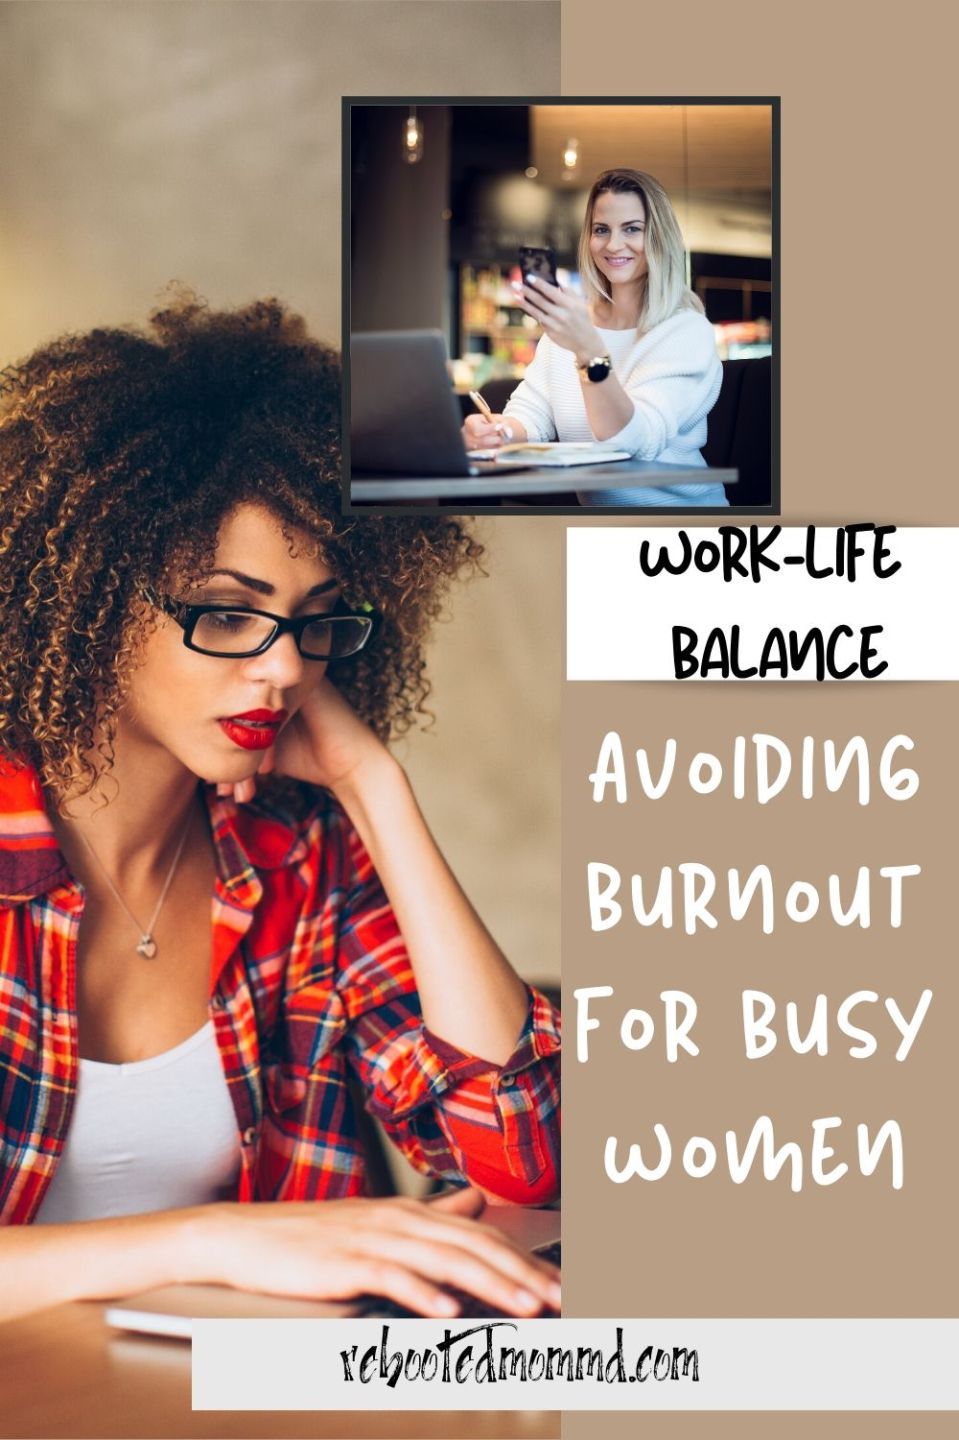 Prevent Burnout: 6 Tips For Busy Women